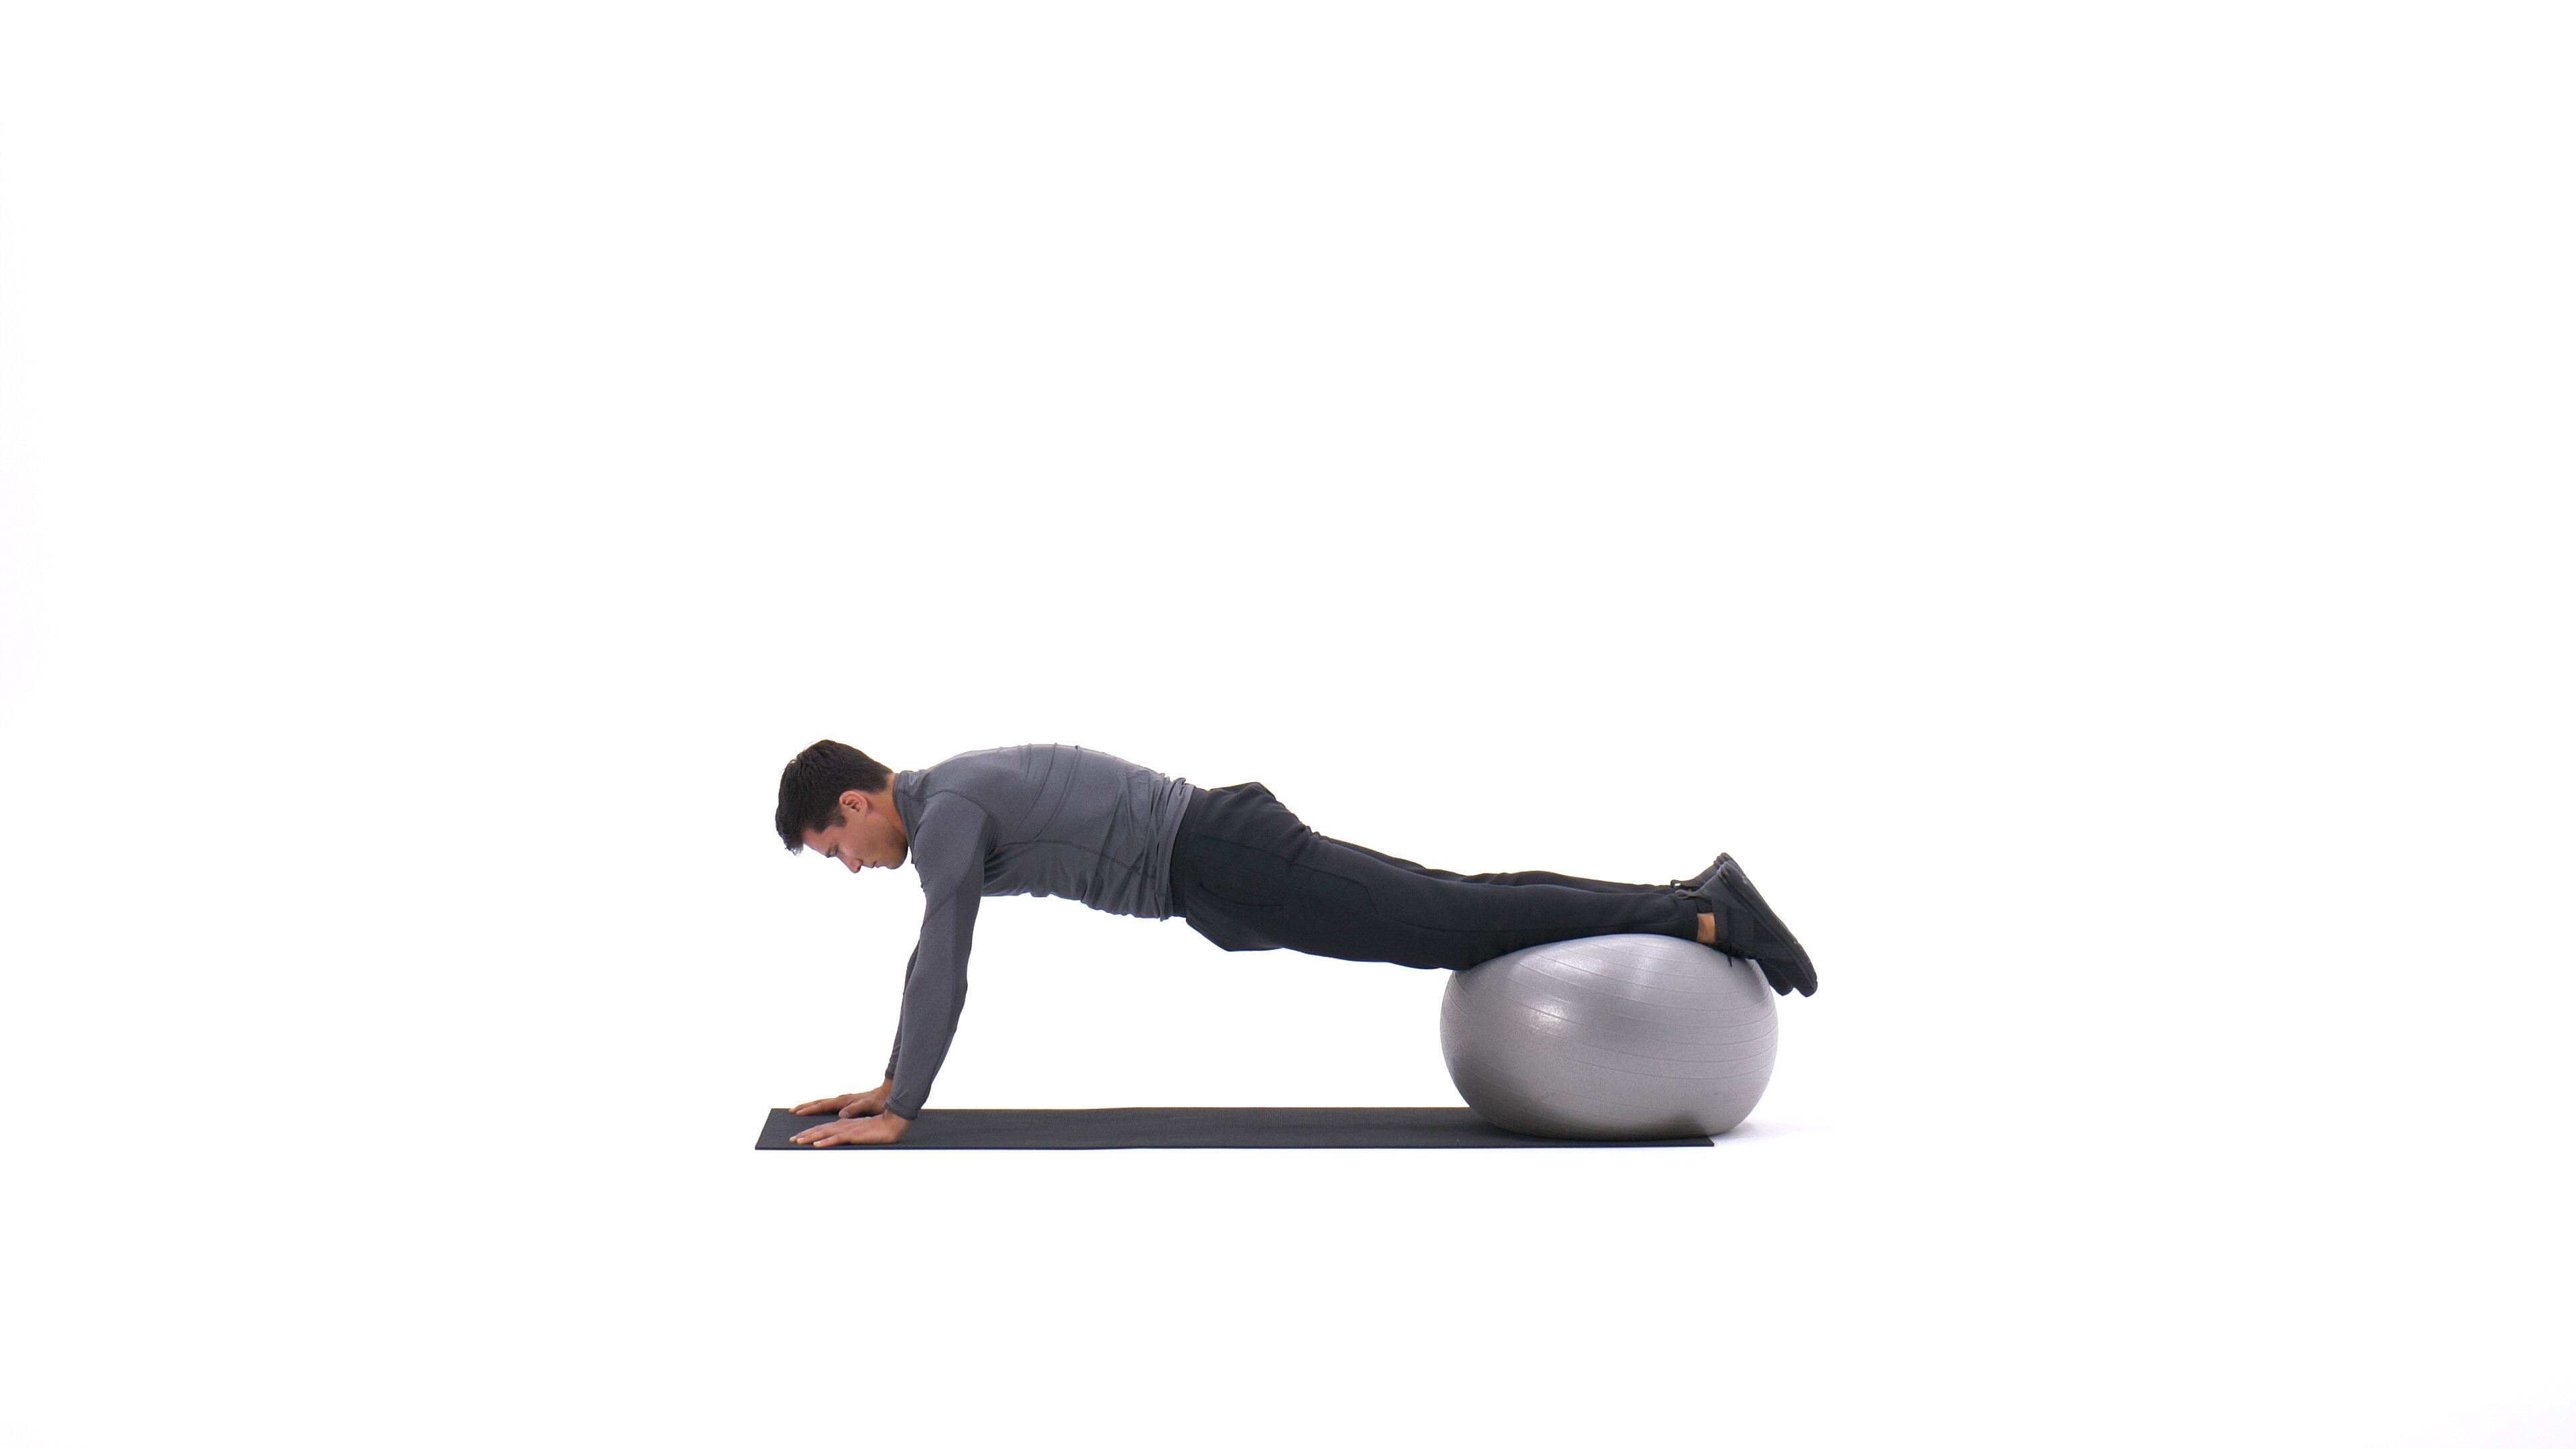 Exercise ball knee roll-in image